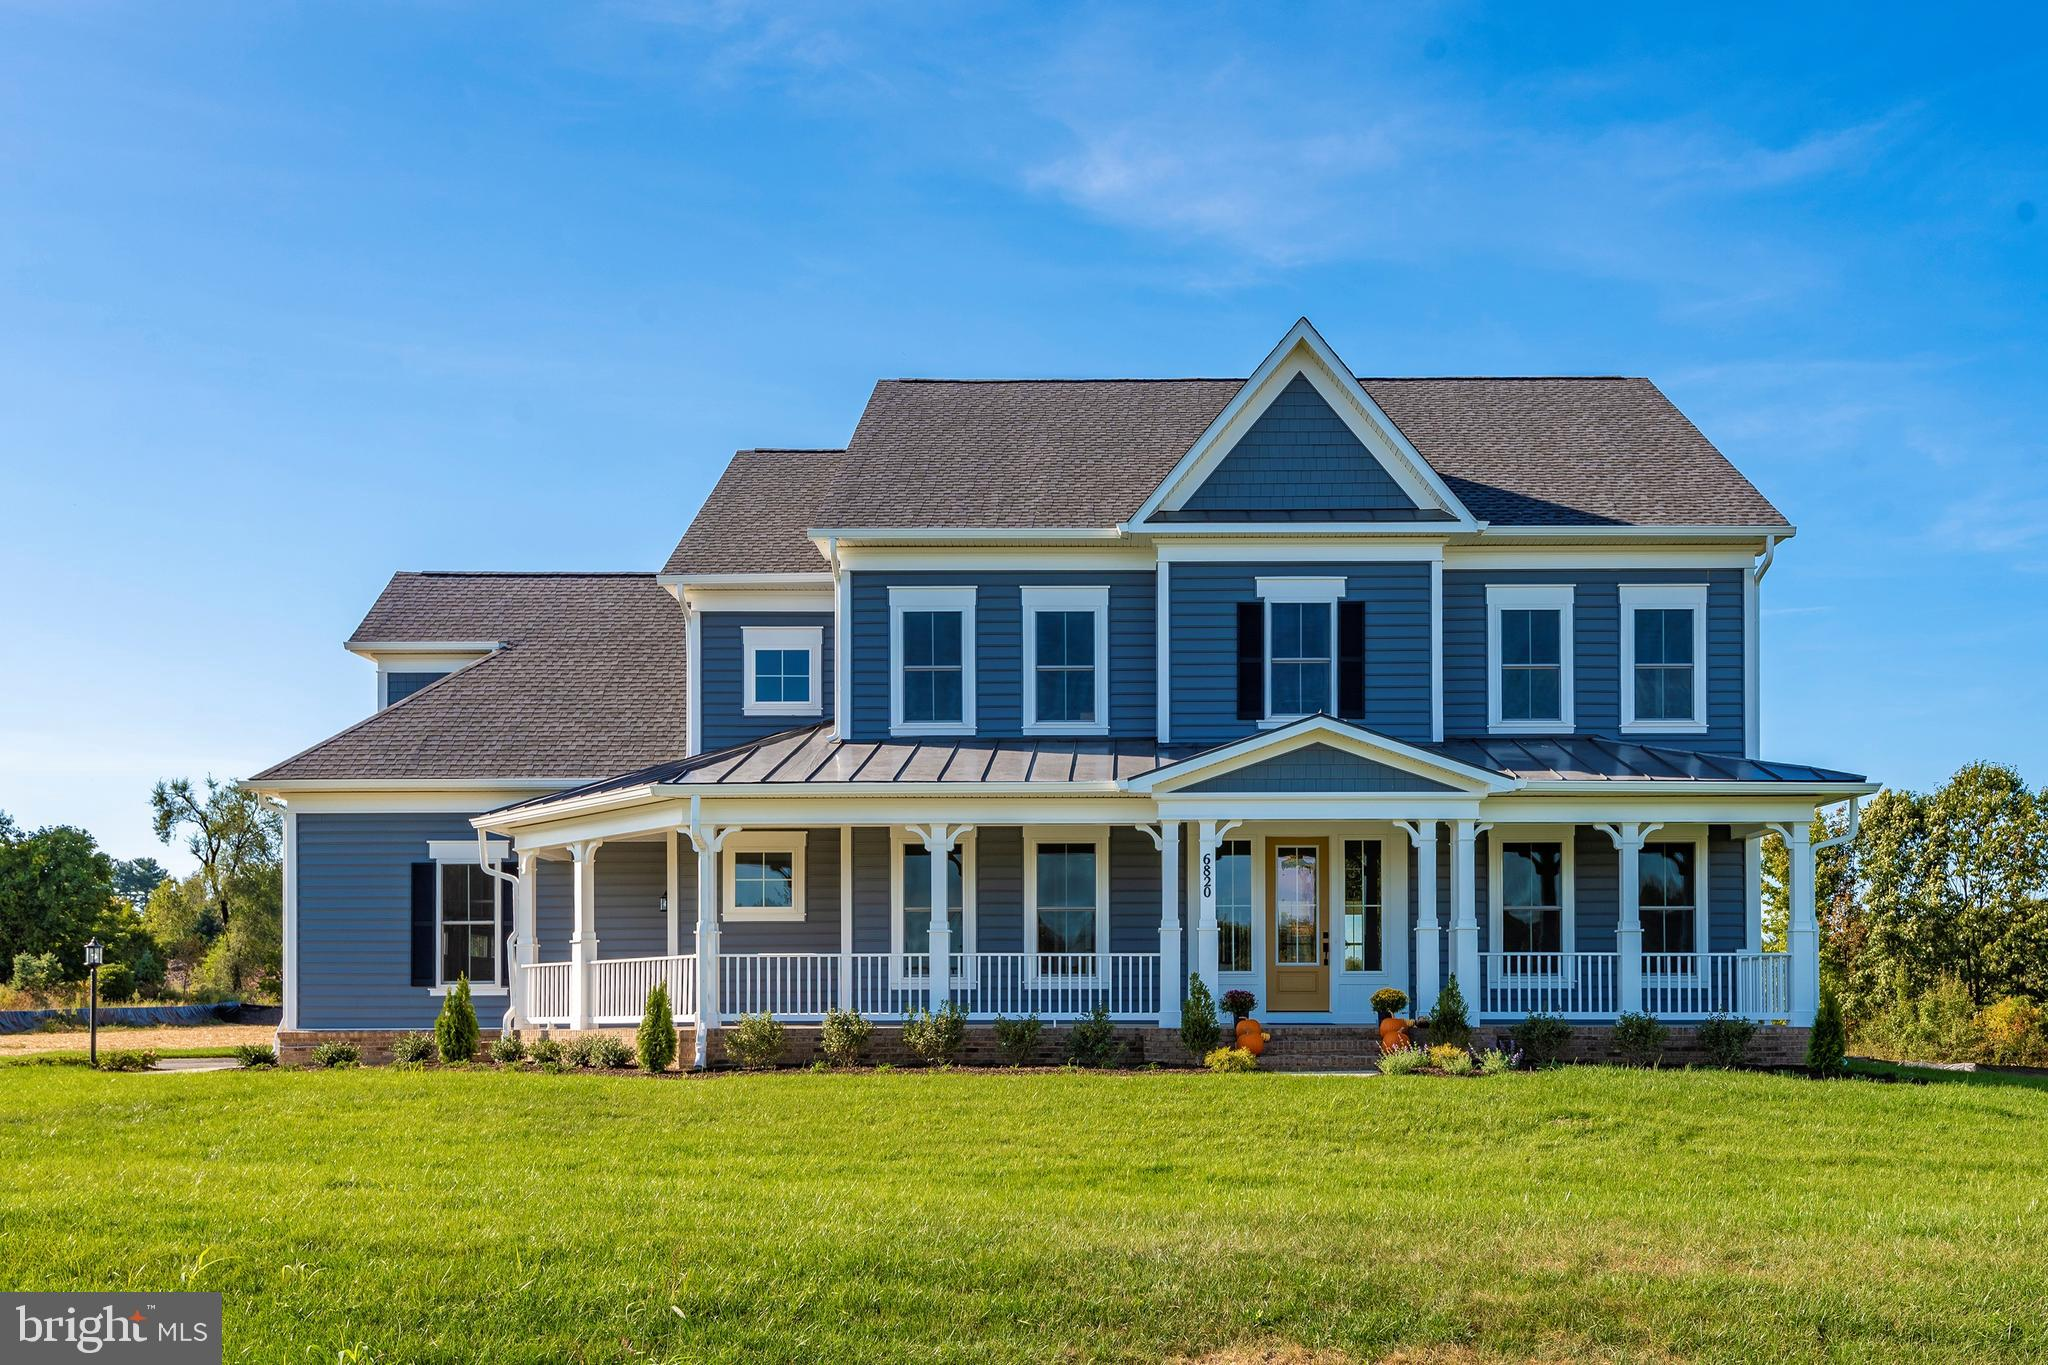 6820 MAPLE KNOLL DRIVE, LAYTONSVILLE, MD 20882